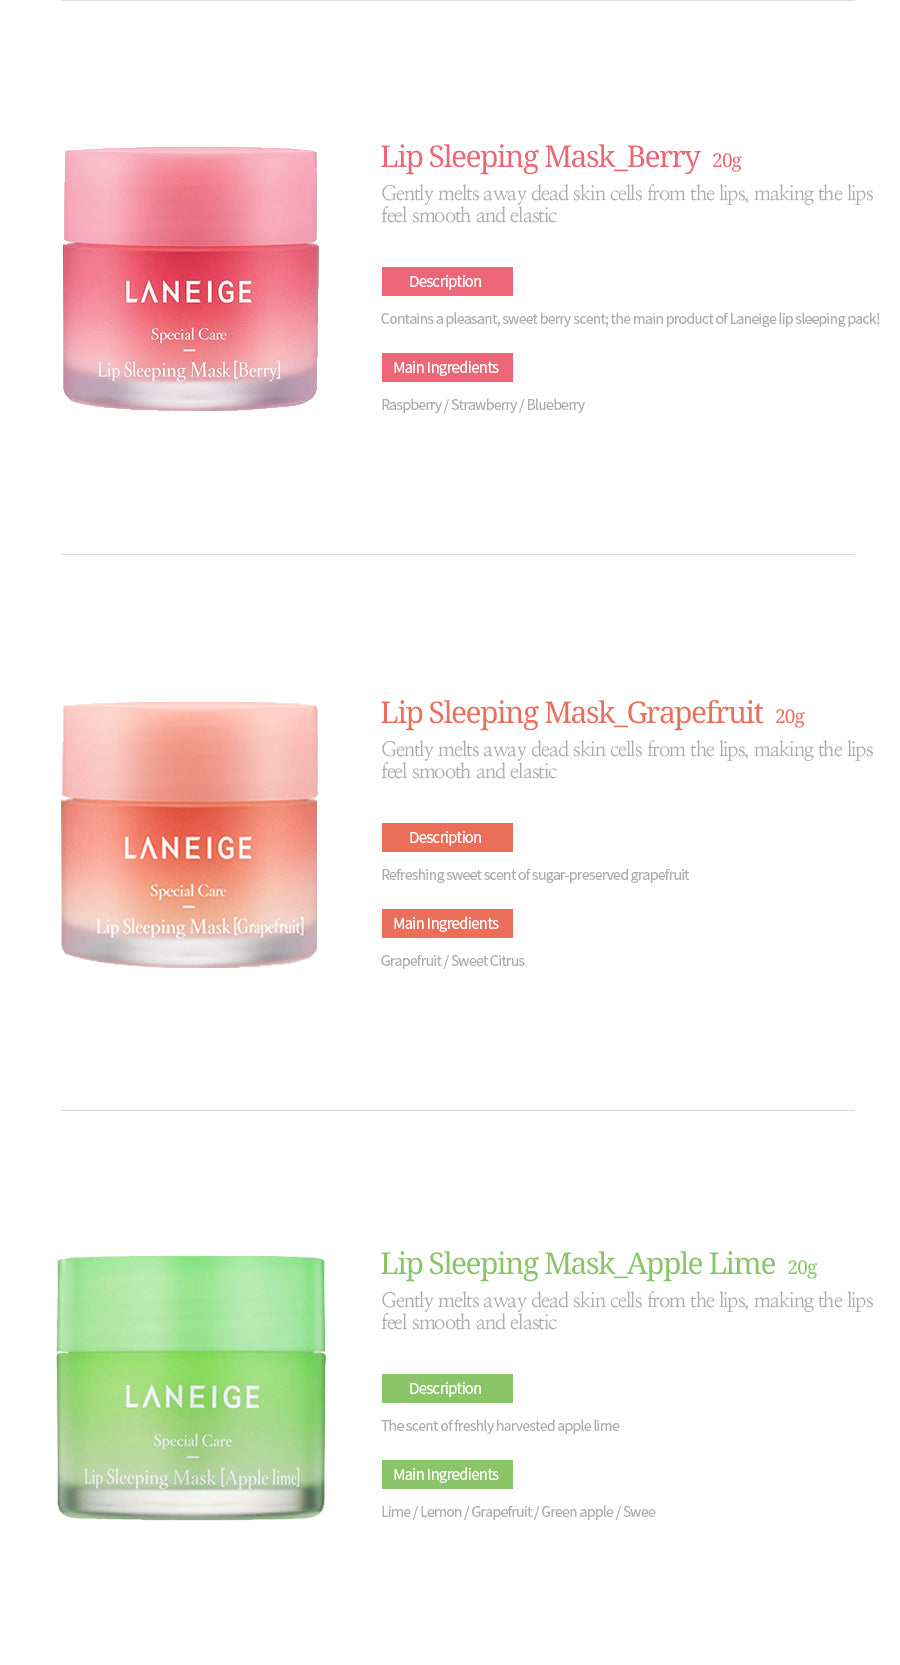 Laneige Lip Sleeping Mask 20g Beauty Meca Gently Melts Away Dead Skin Cells From The Lips Making Feel Smooth And Elastic